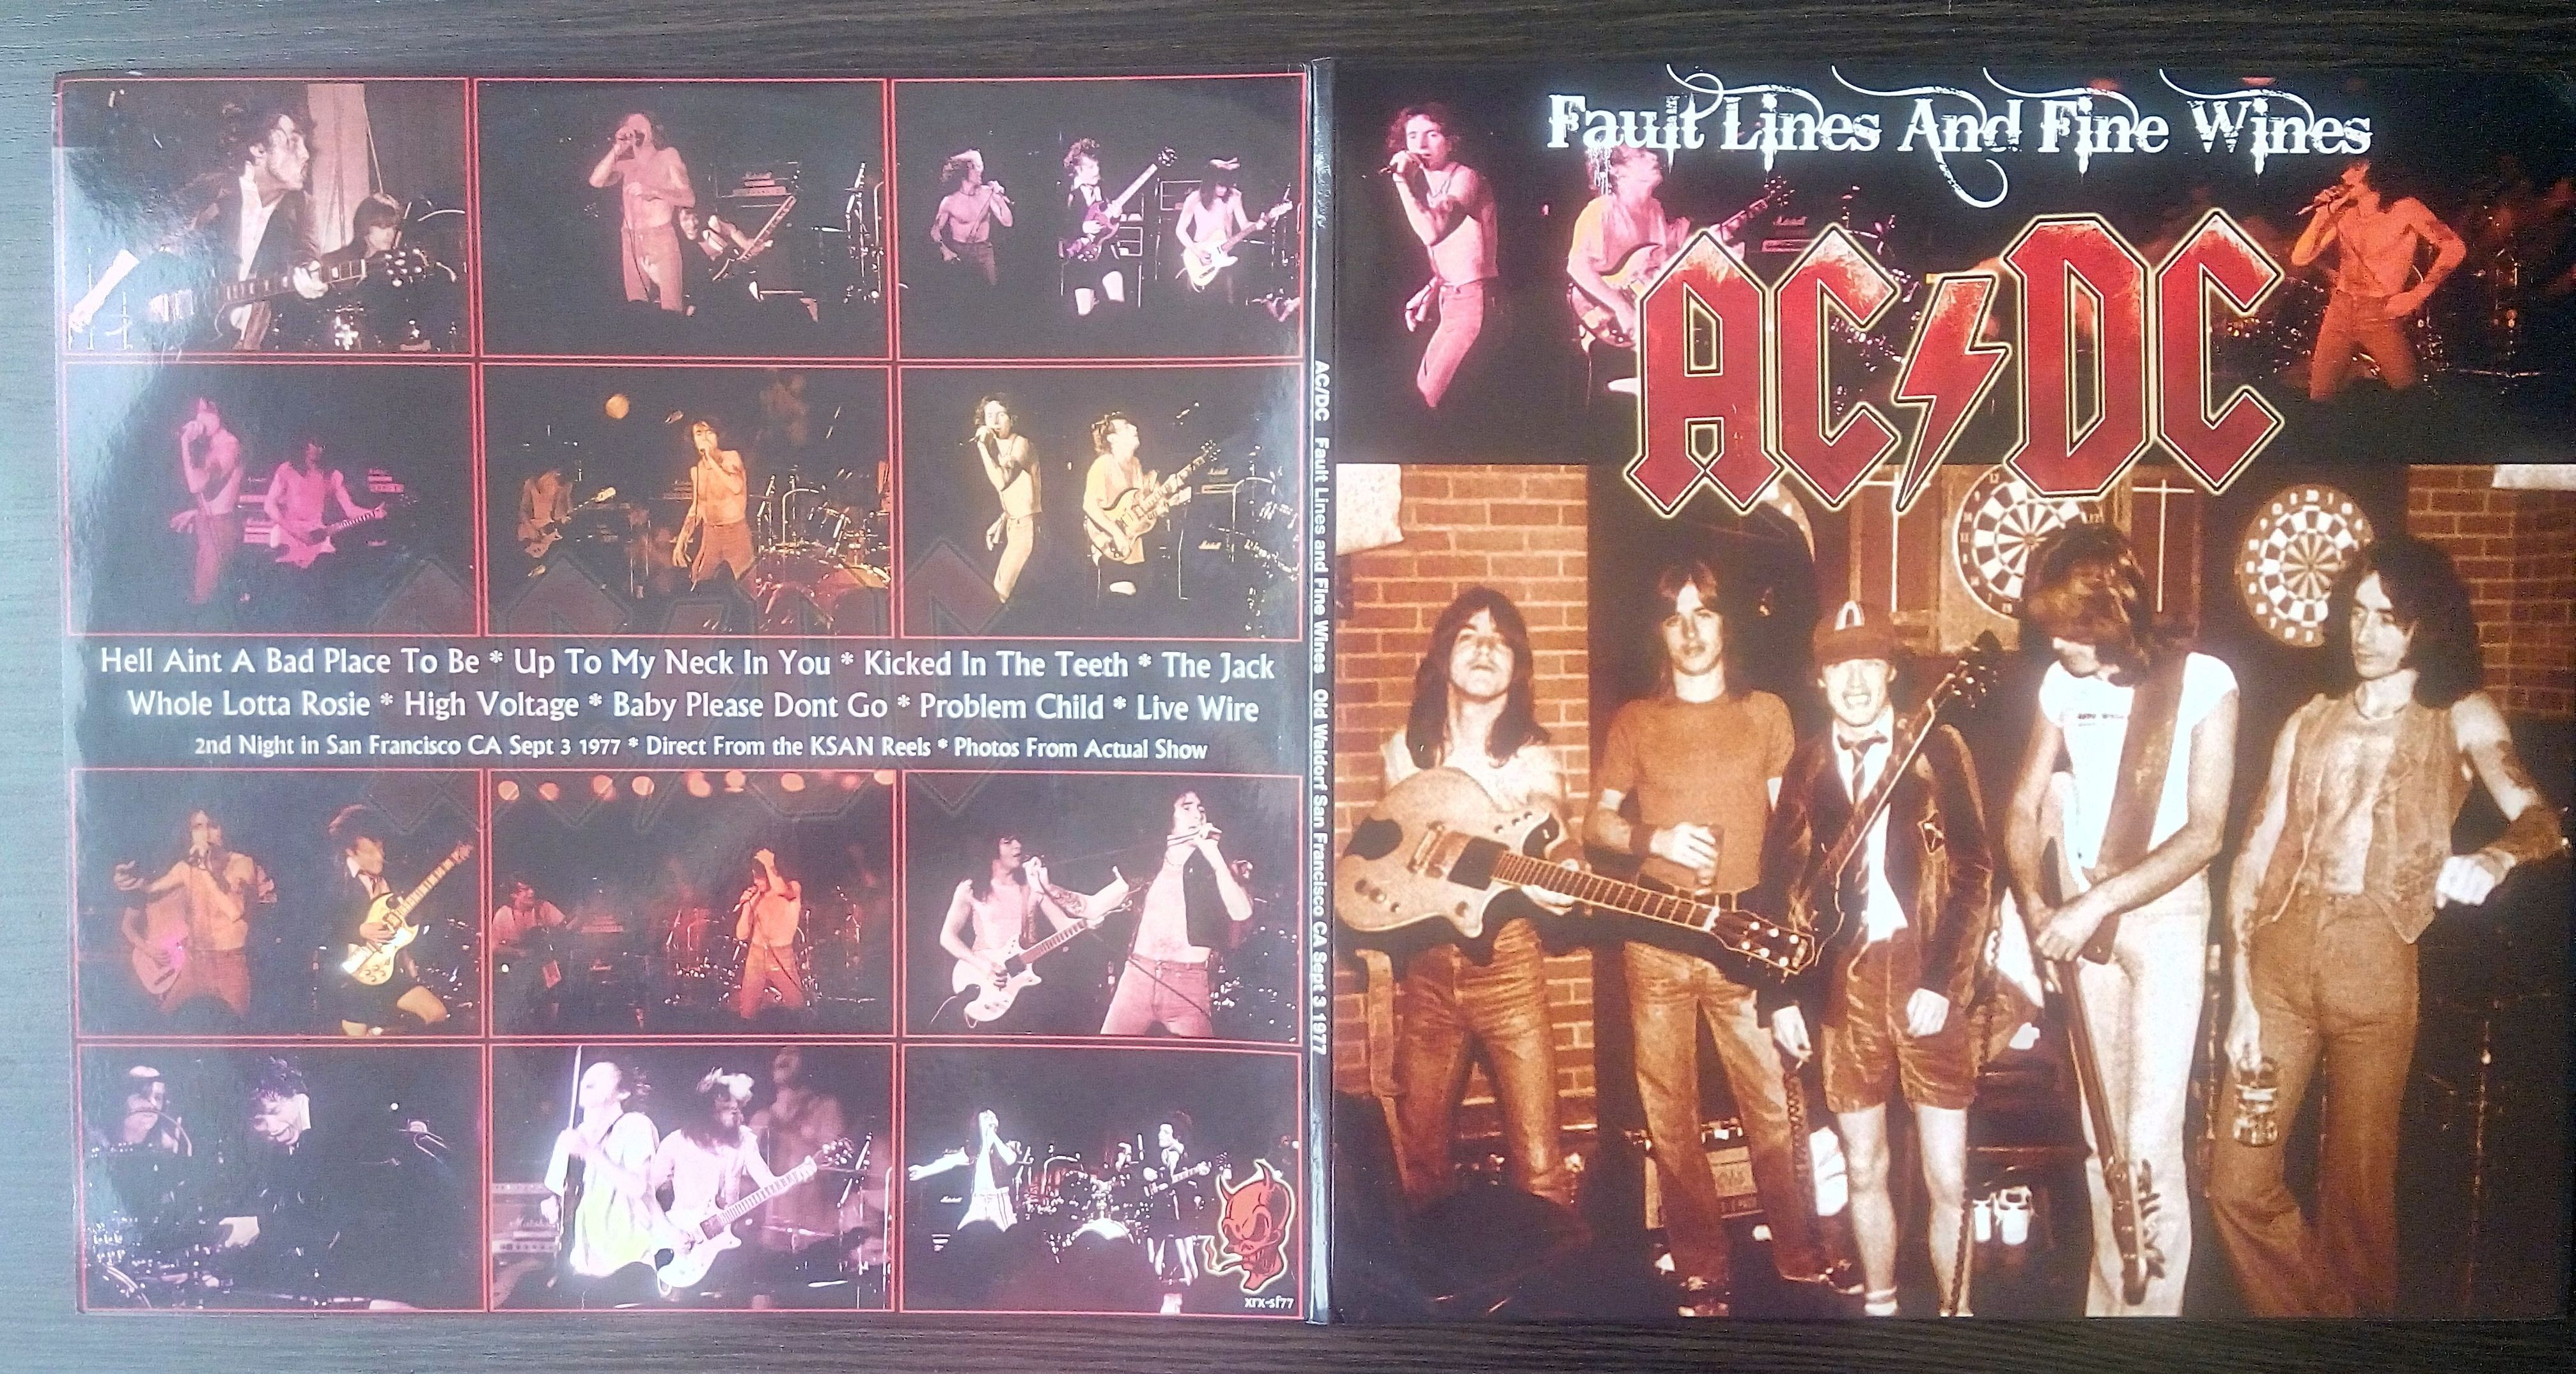 ac/dc fault lines and fine wines - recorded live, 2nd night in san francisco, ca, sept 3rd 1977. direct fr